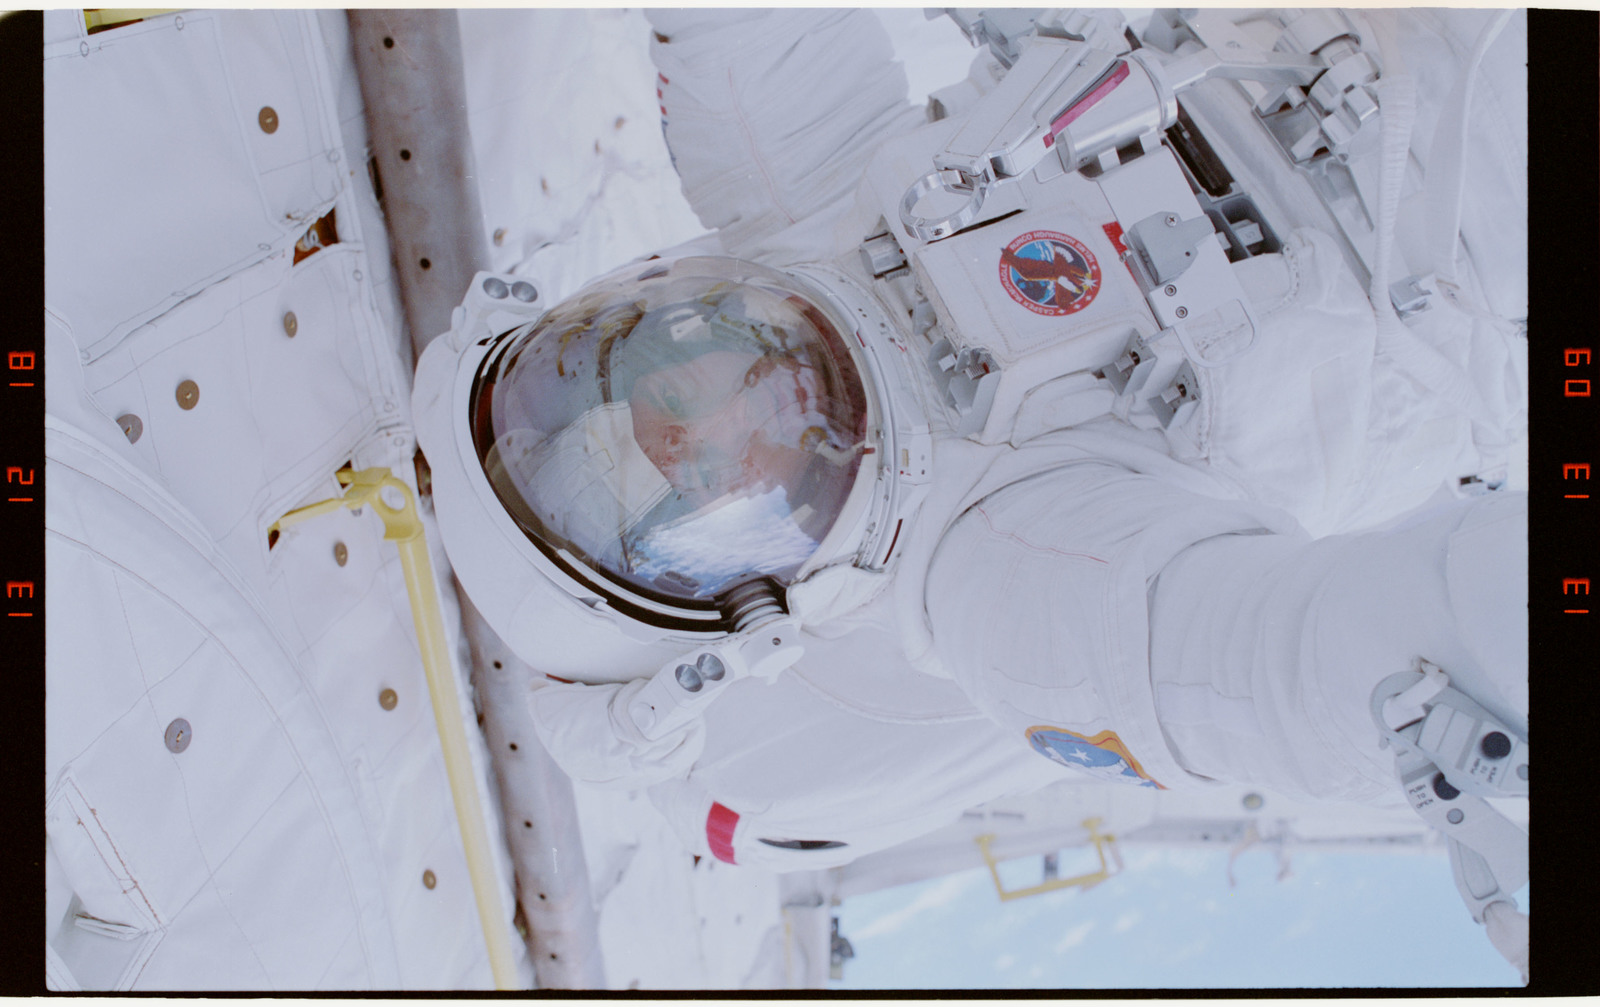 STS054-29-017 - STS-054 - Partial view of EV-1 (red stripe) crewmember in the payload bay.